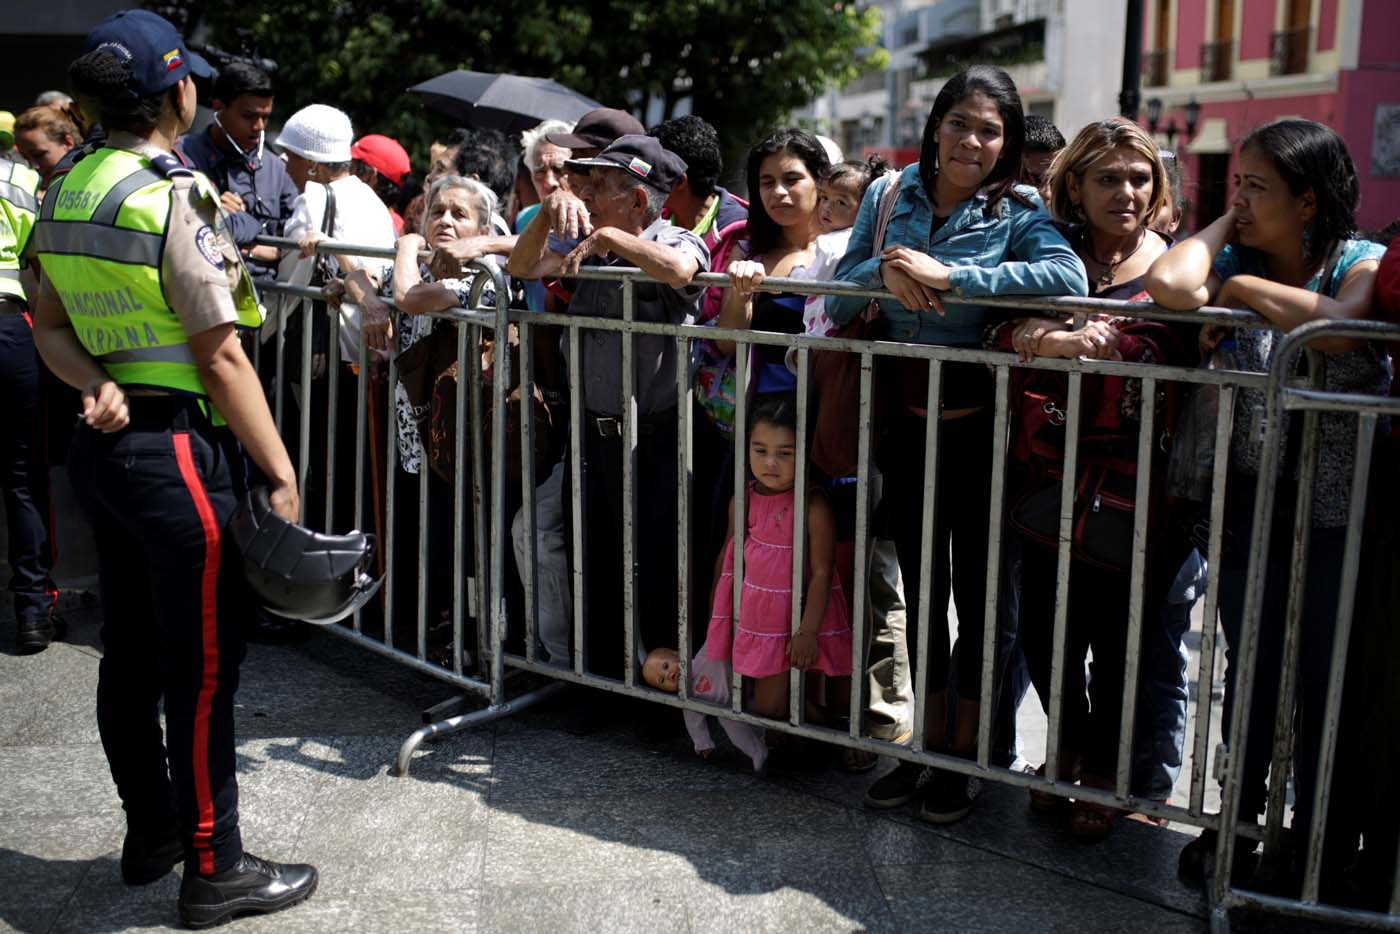 People wait to apply for a card that will register them for government social programmes, in front of a police officer, in Caracas, Venezuela January 20, 2017. REUTERS/Marco Bello